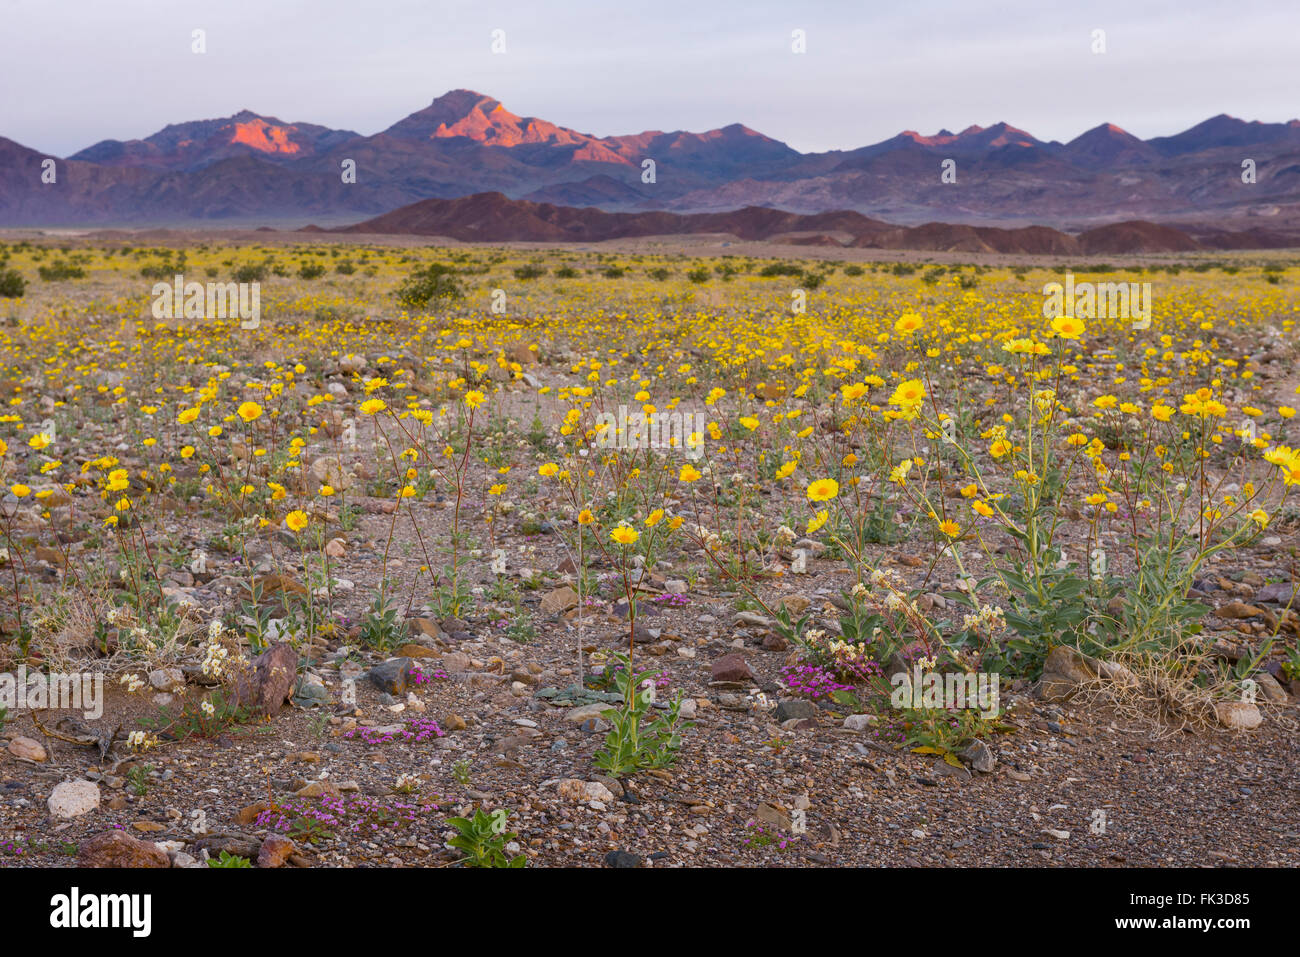 The wildflower covered roads and valley floor in Death Valley National Park during the 2016 super bloom event. - Stock Image